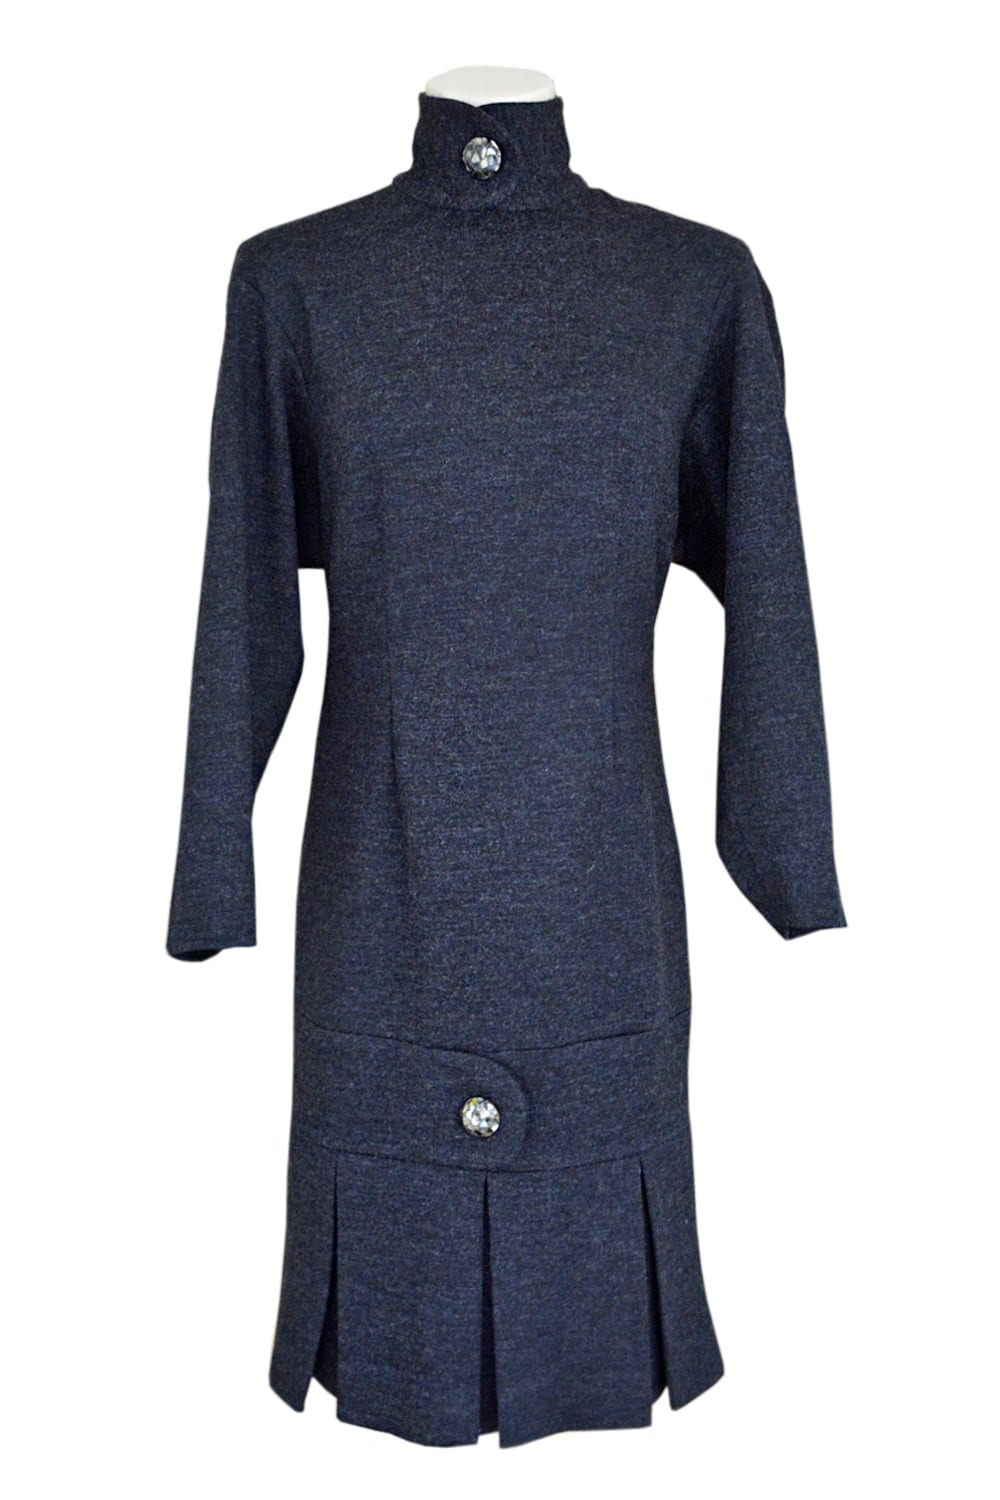 Gray wool dress. Long sleeves with crossed collar closed by a big silver button. Hollow pleats on the bottom of dress with closed cross belt with a silvery decorative button.